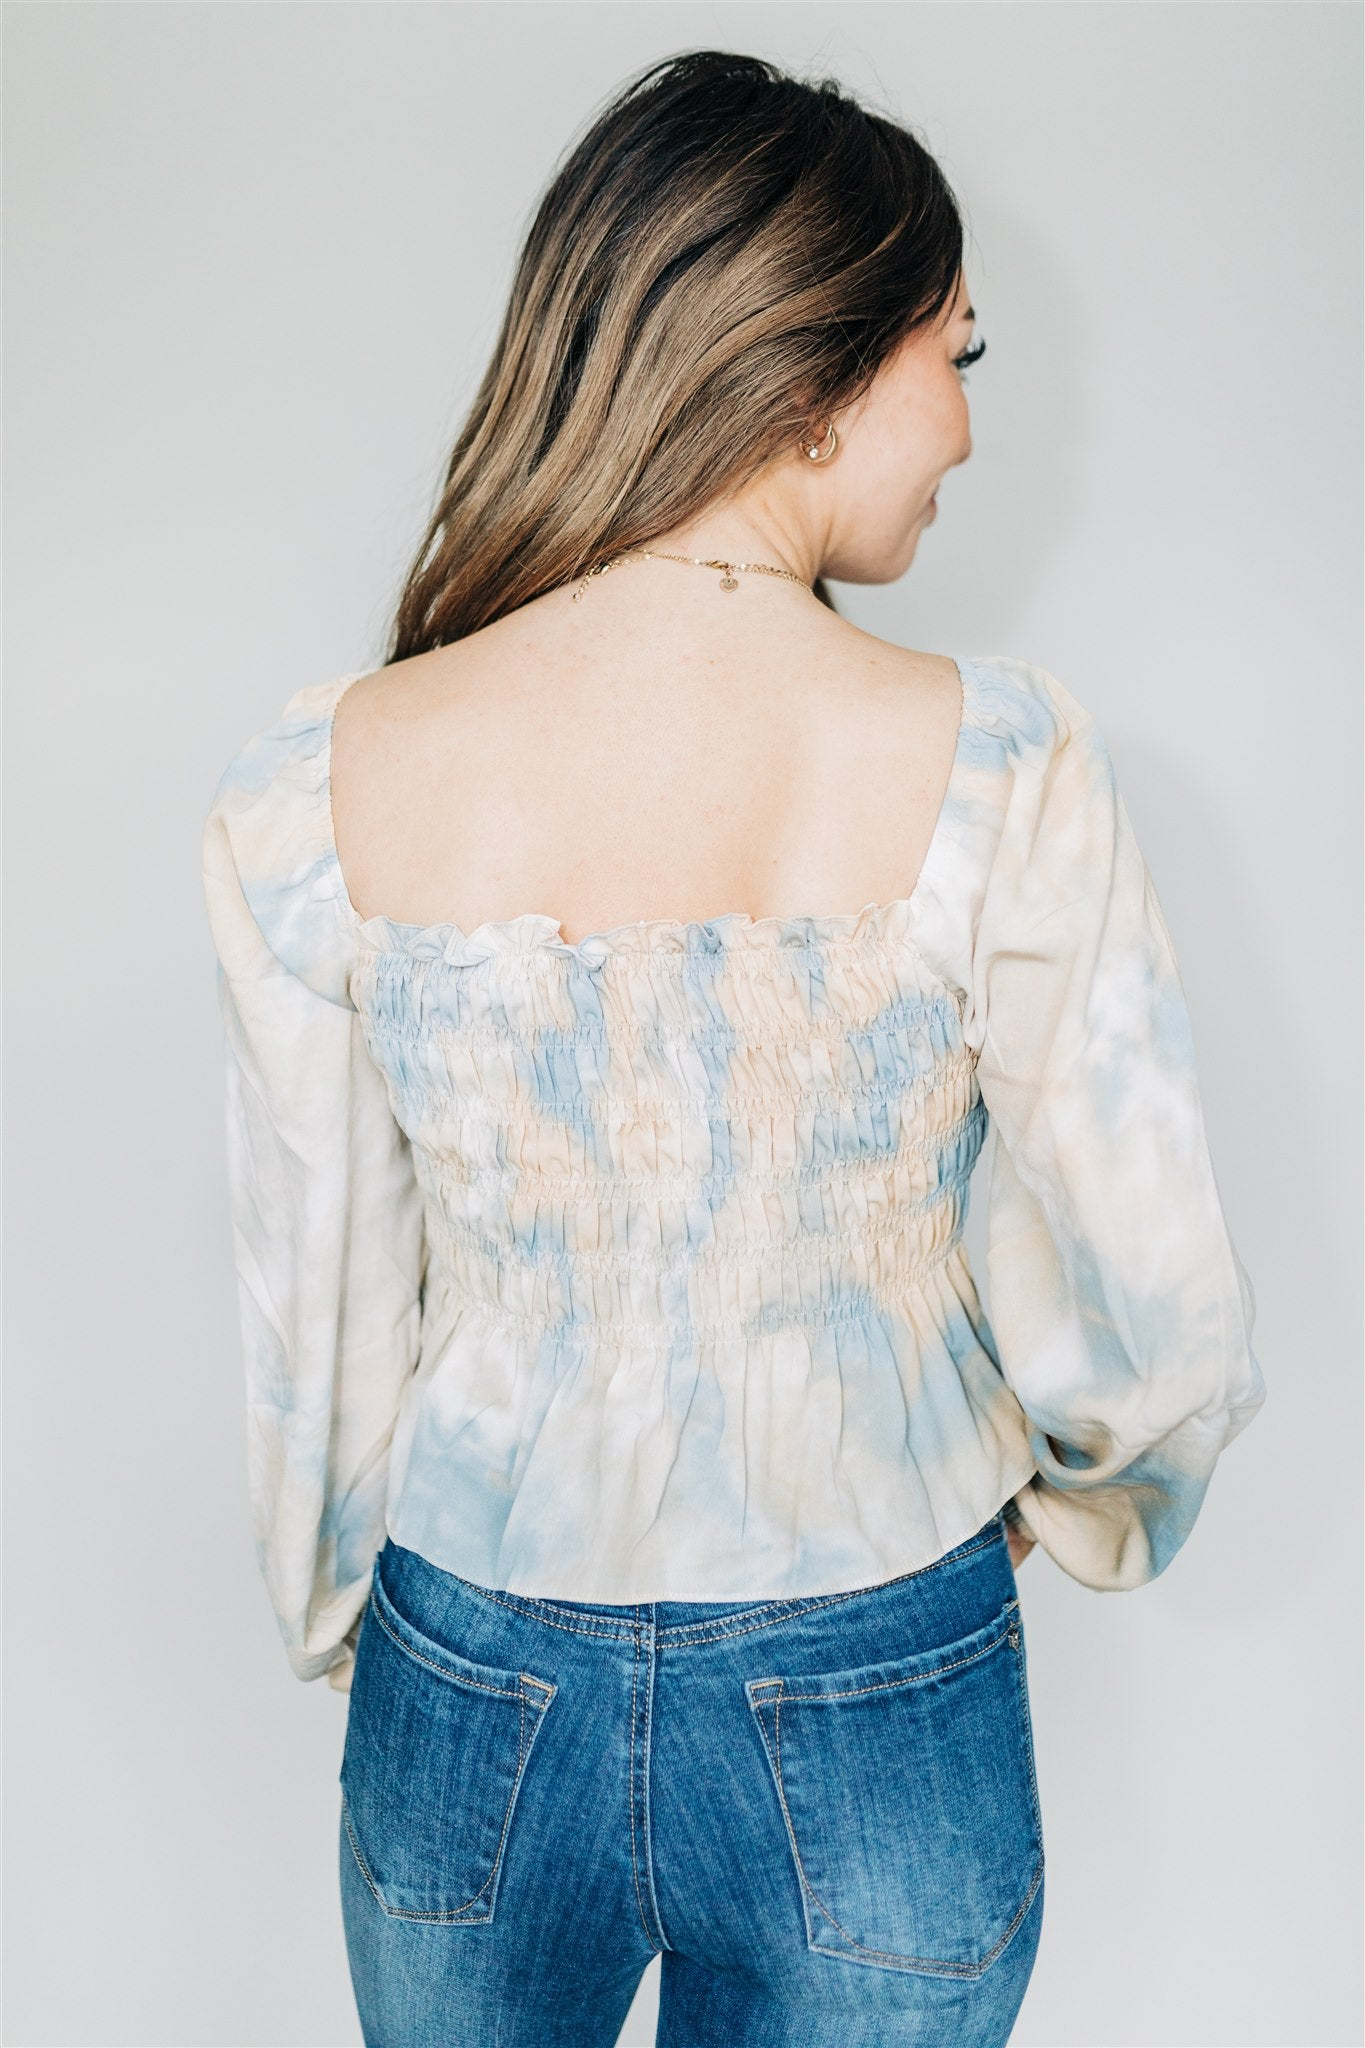 Once Upon a Dream Top - Blue/Tan